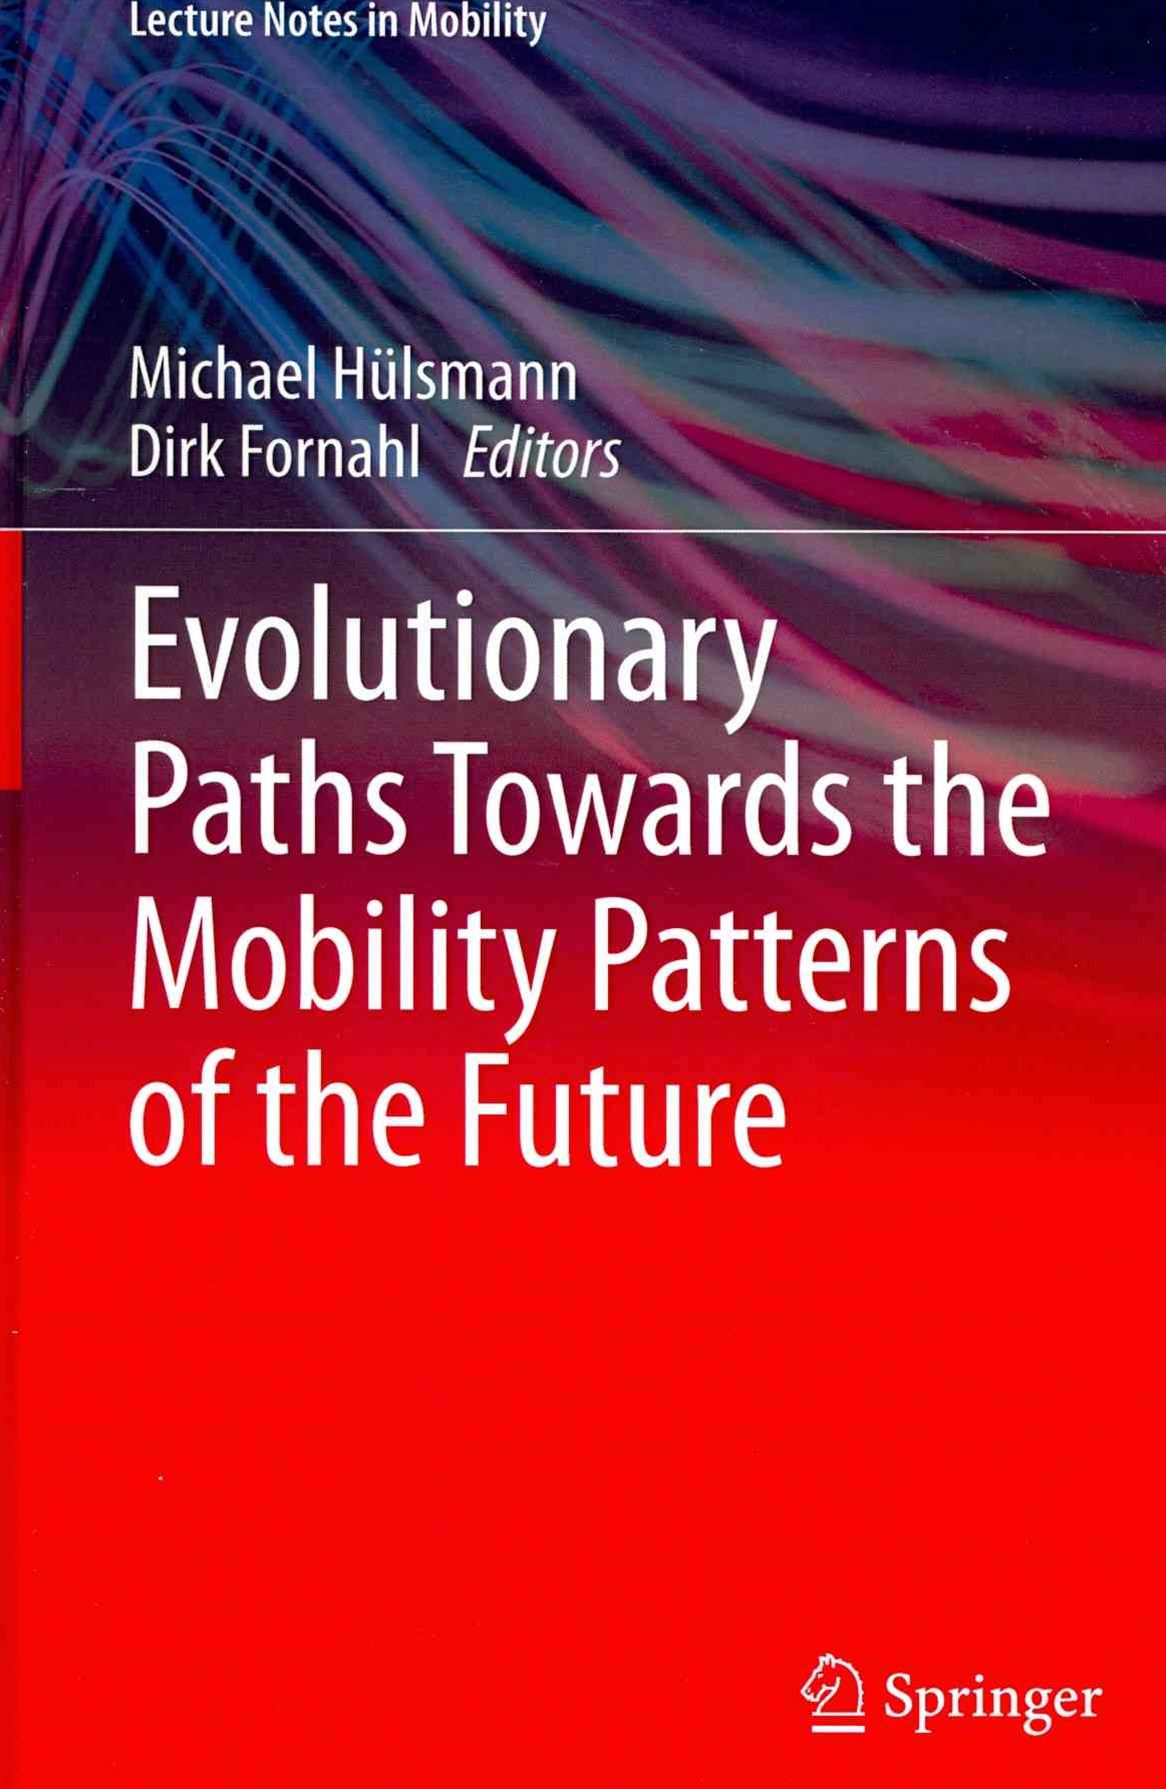 Evolutionary Paths Towards the Mobility Patterns of the Future